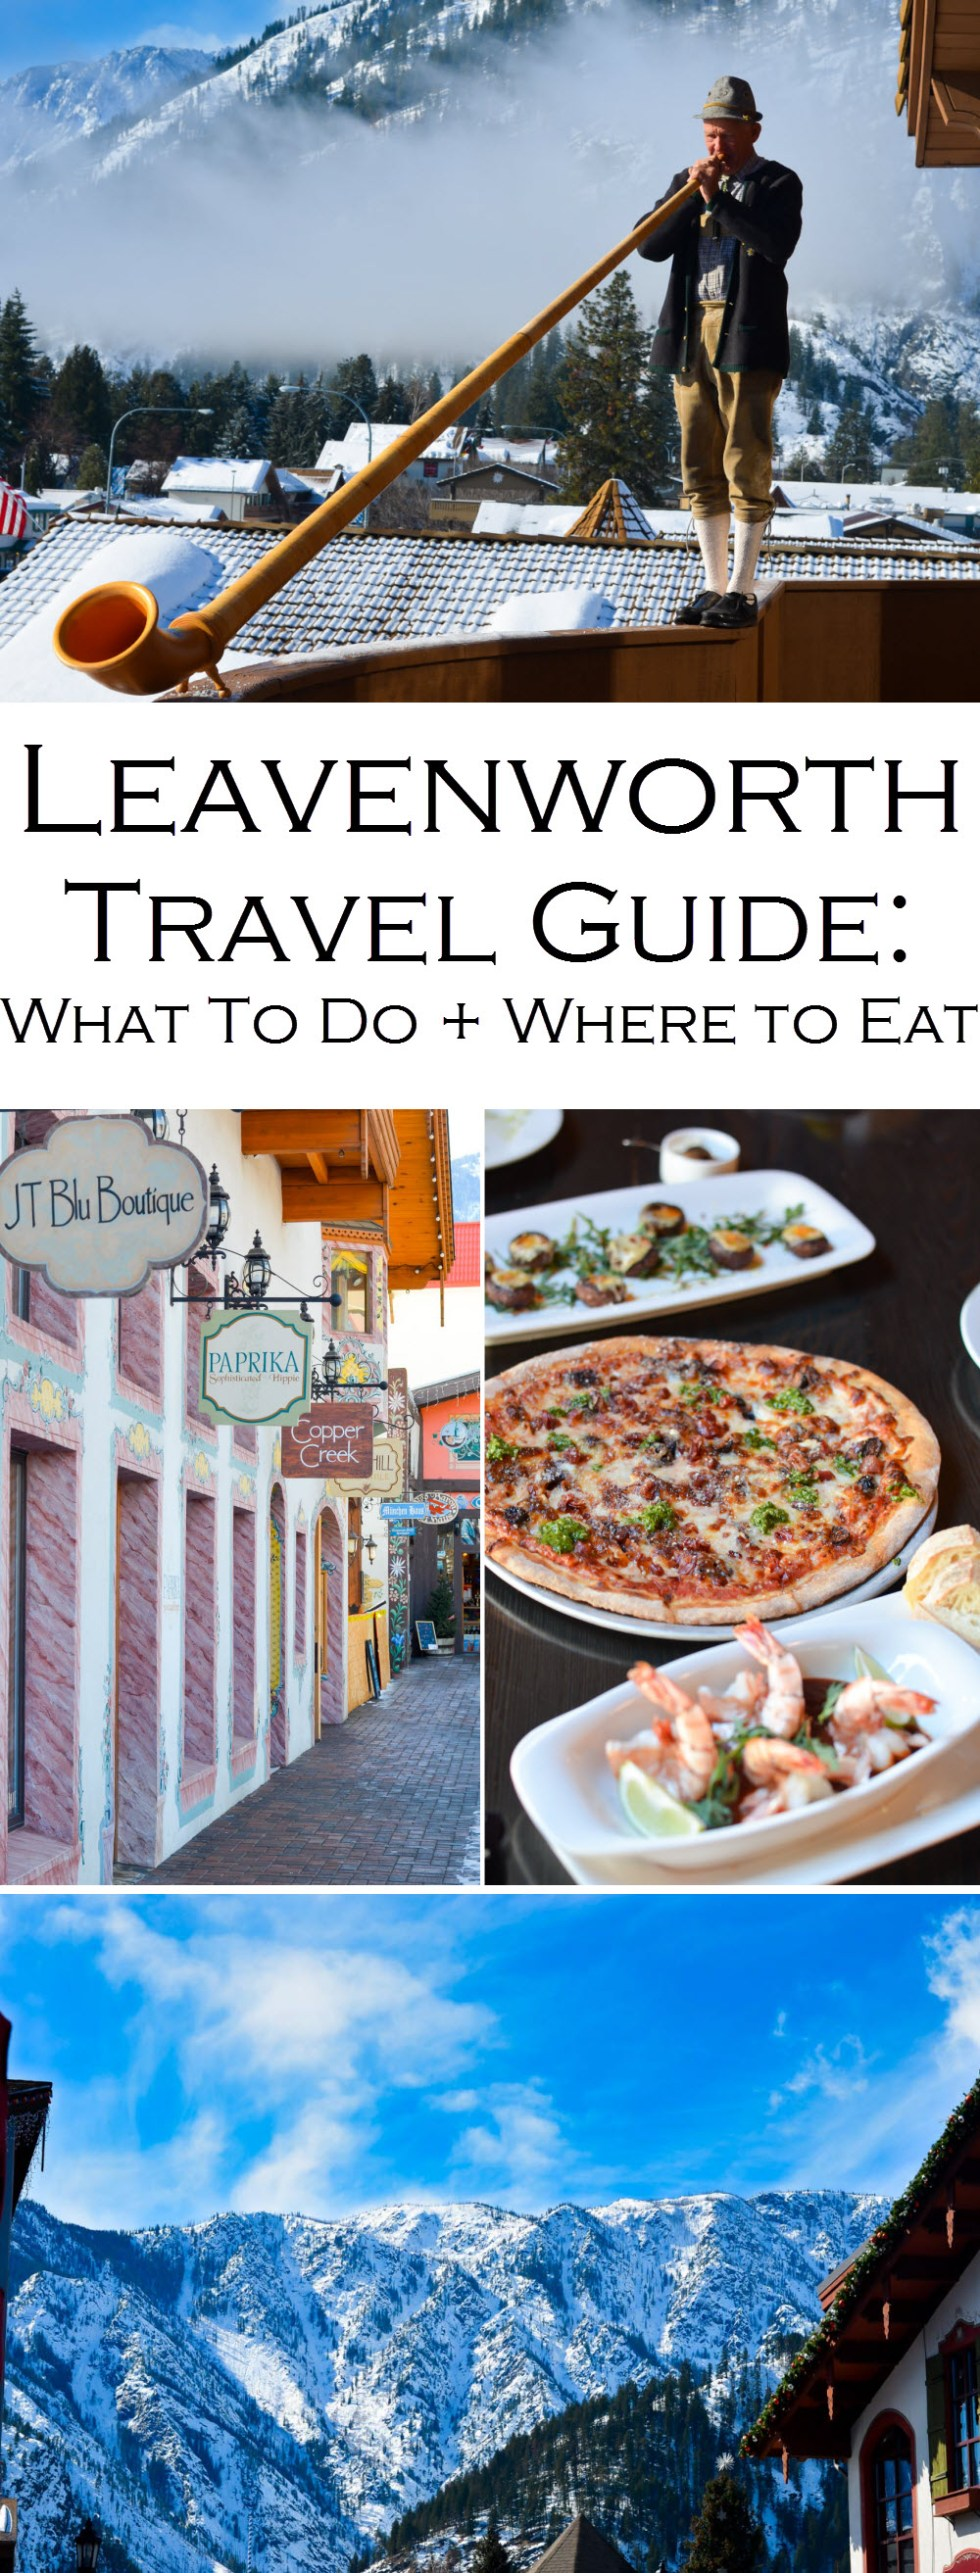 Where to Eat + Stay, What to Do in Leavenworth, Washington Travel Guide. A fun Bavarian town in the PNW. A great day trip from Yakima or a weekend trip from Seattle. #PNW #washington #ustravel #travelblog #travelblogger #lpworldtravels